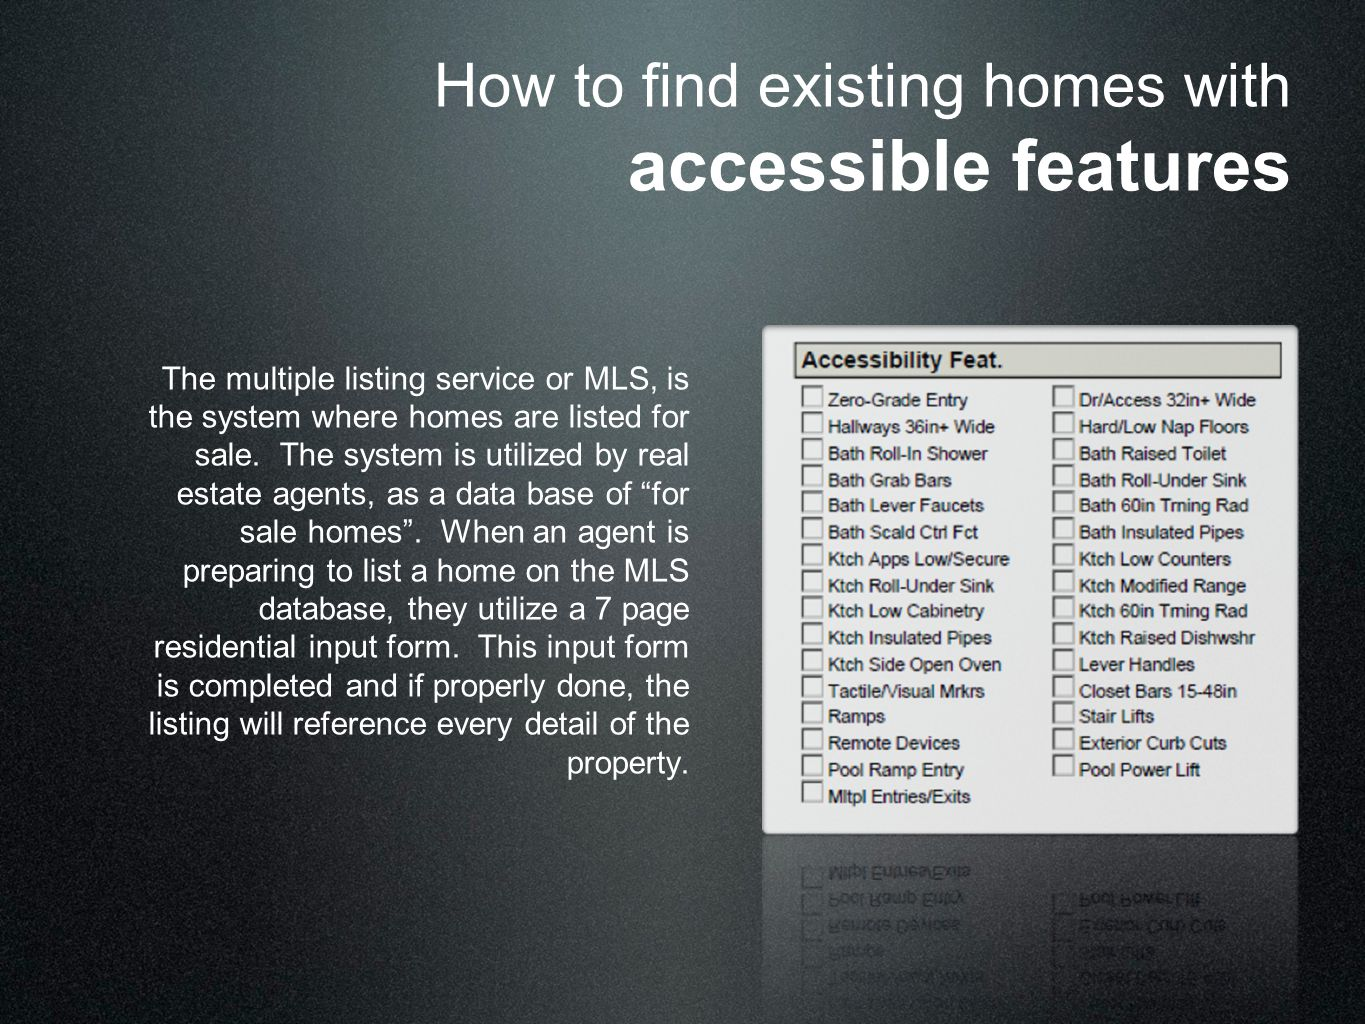 How to find existing homes with accessible features The multiple listing service or MLS, is the system where homes are listed for sale. The system is